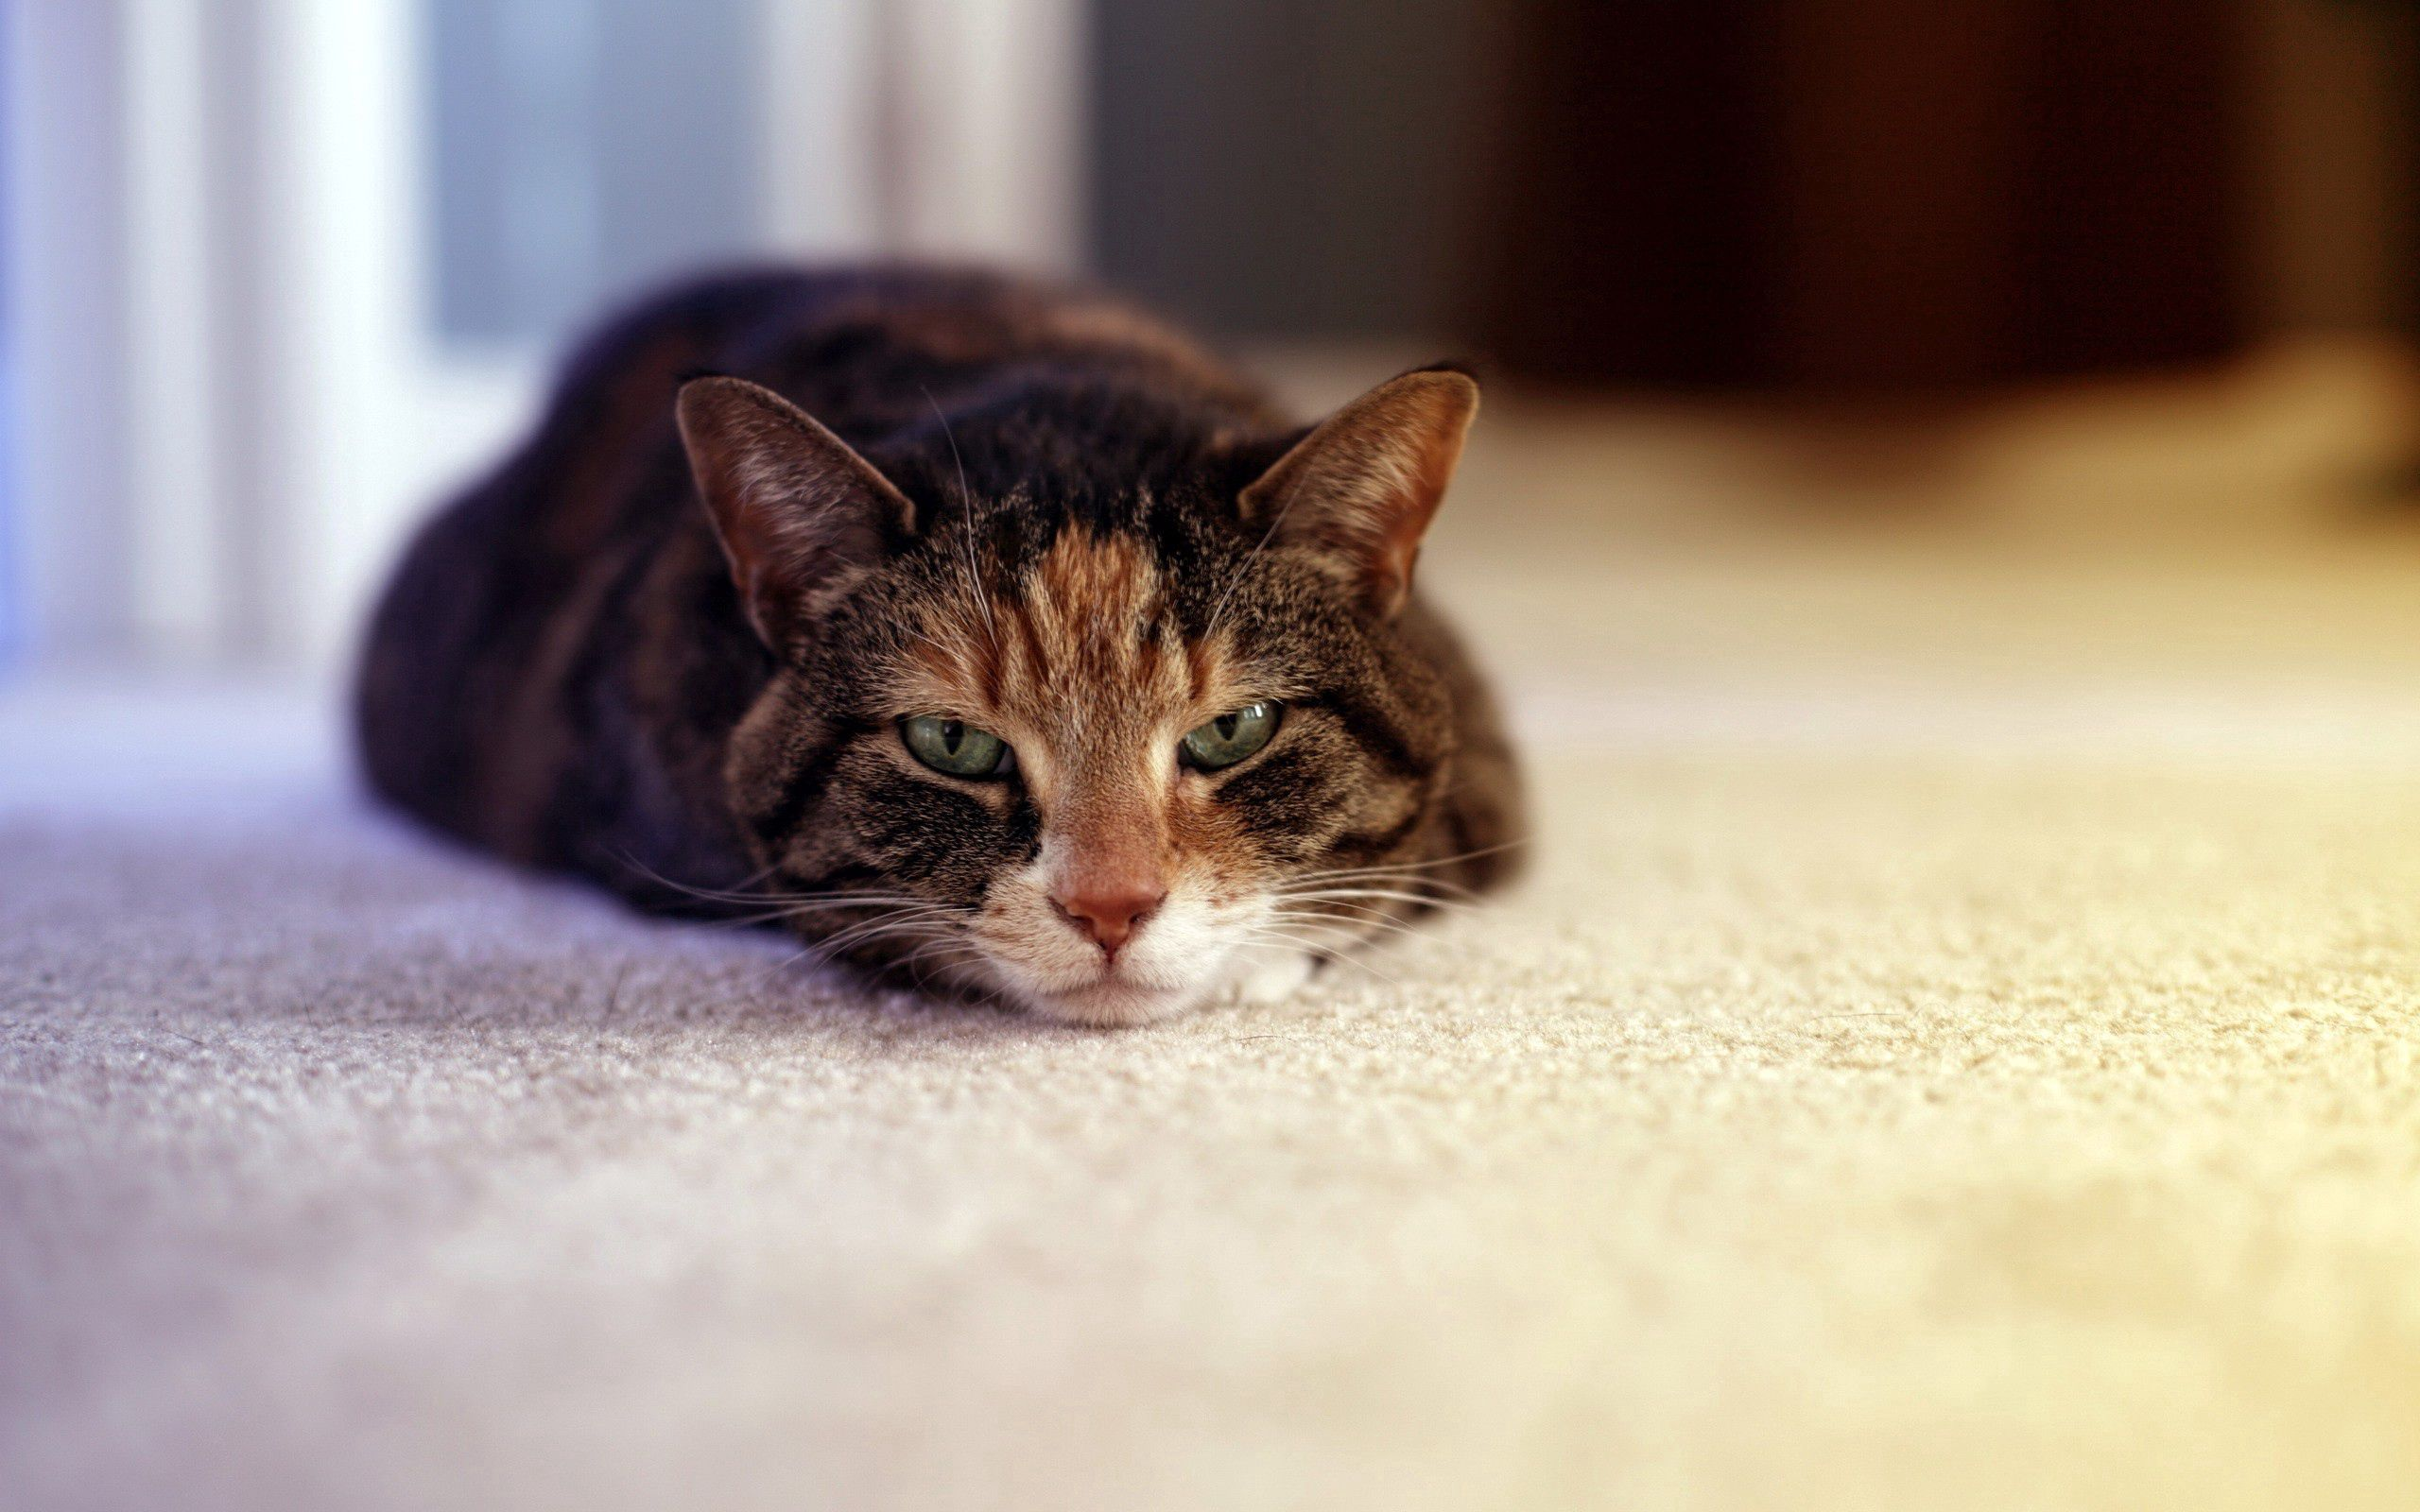 126135 download wallpaper Animals, Cat, Lies, Muzzle, Sleepy screensavers and pictures for free